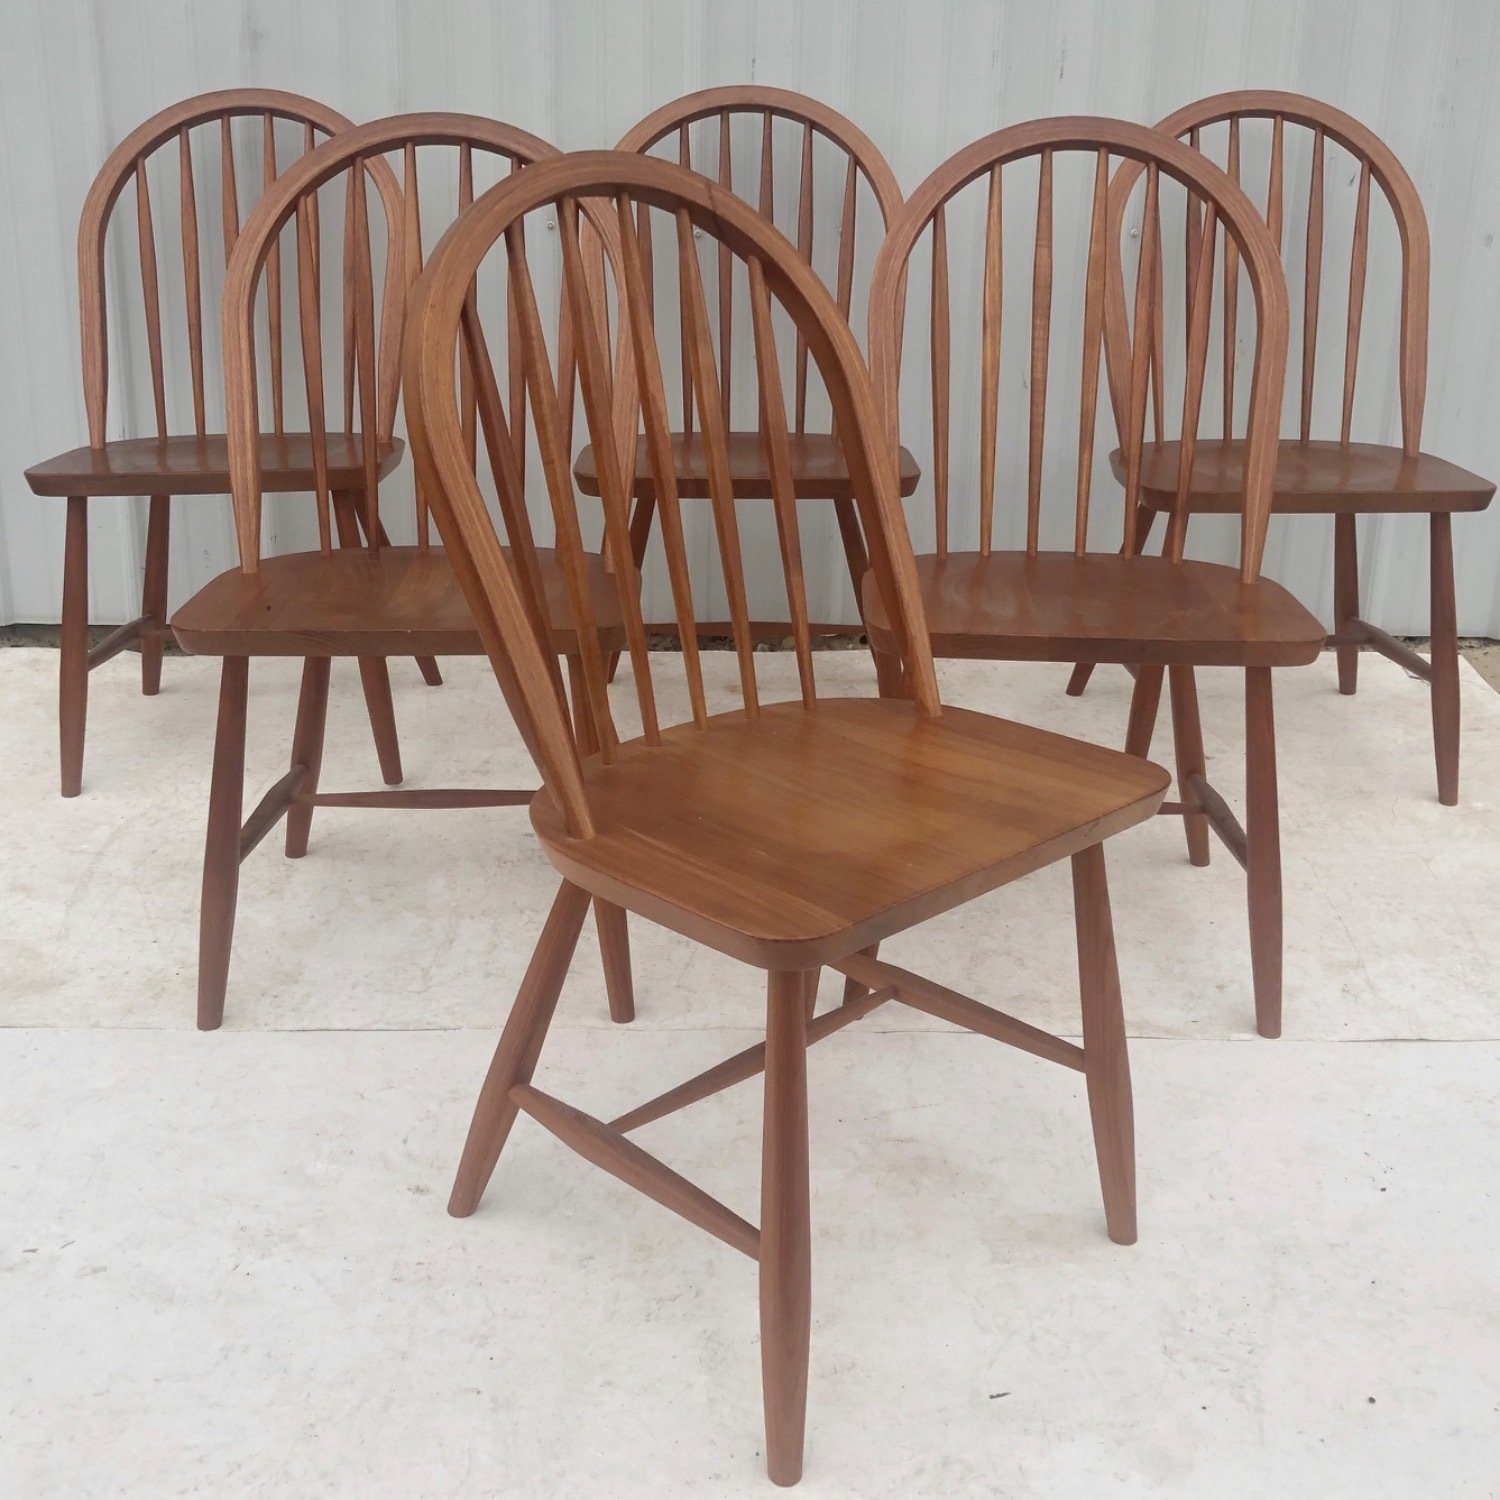 Vintage Modern Dining Set w/ Six Chairs - image-15